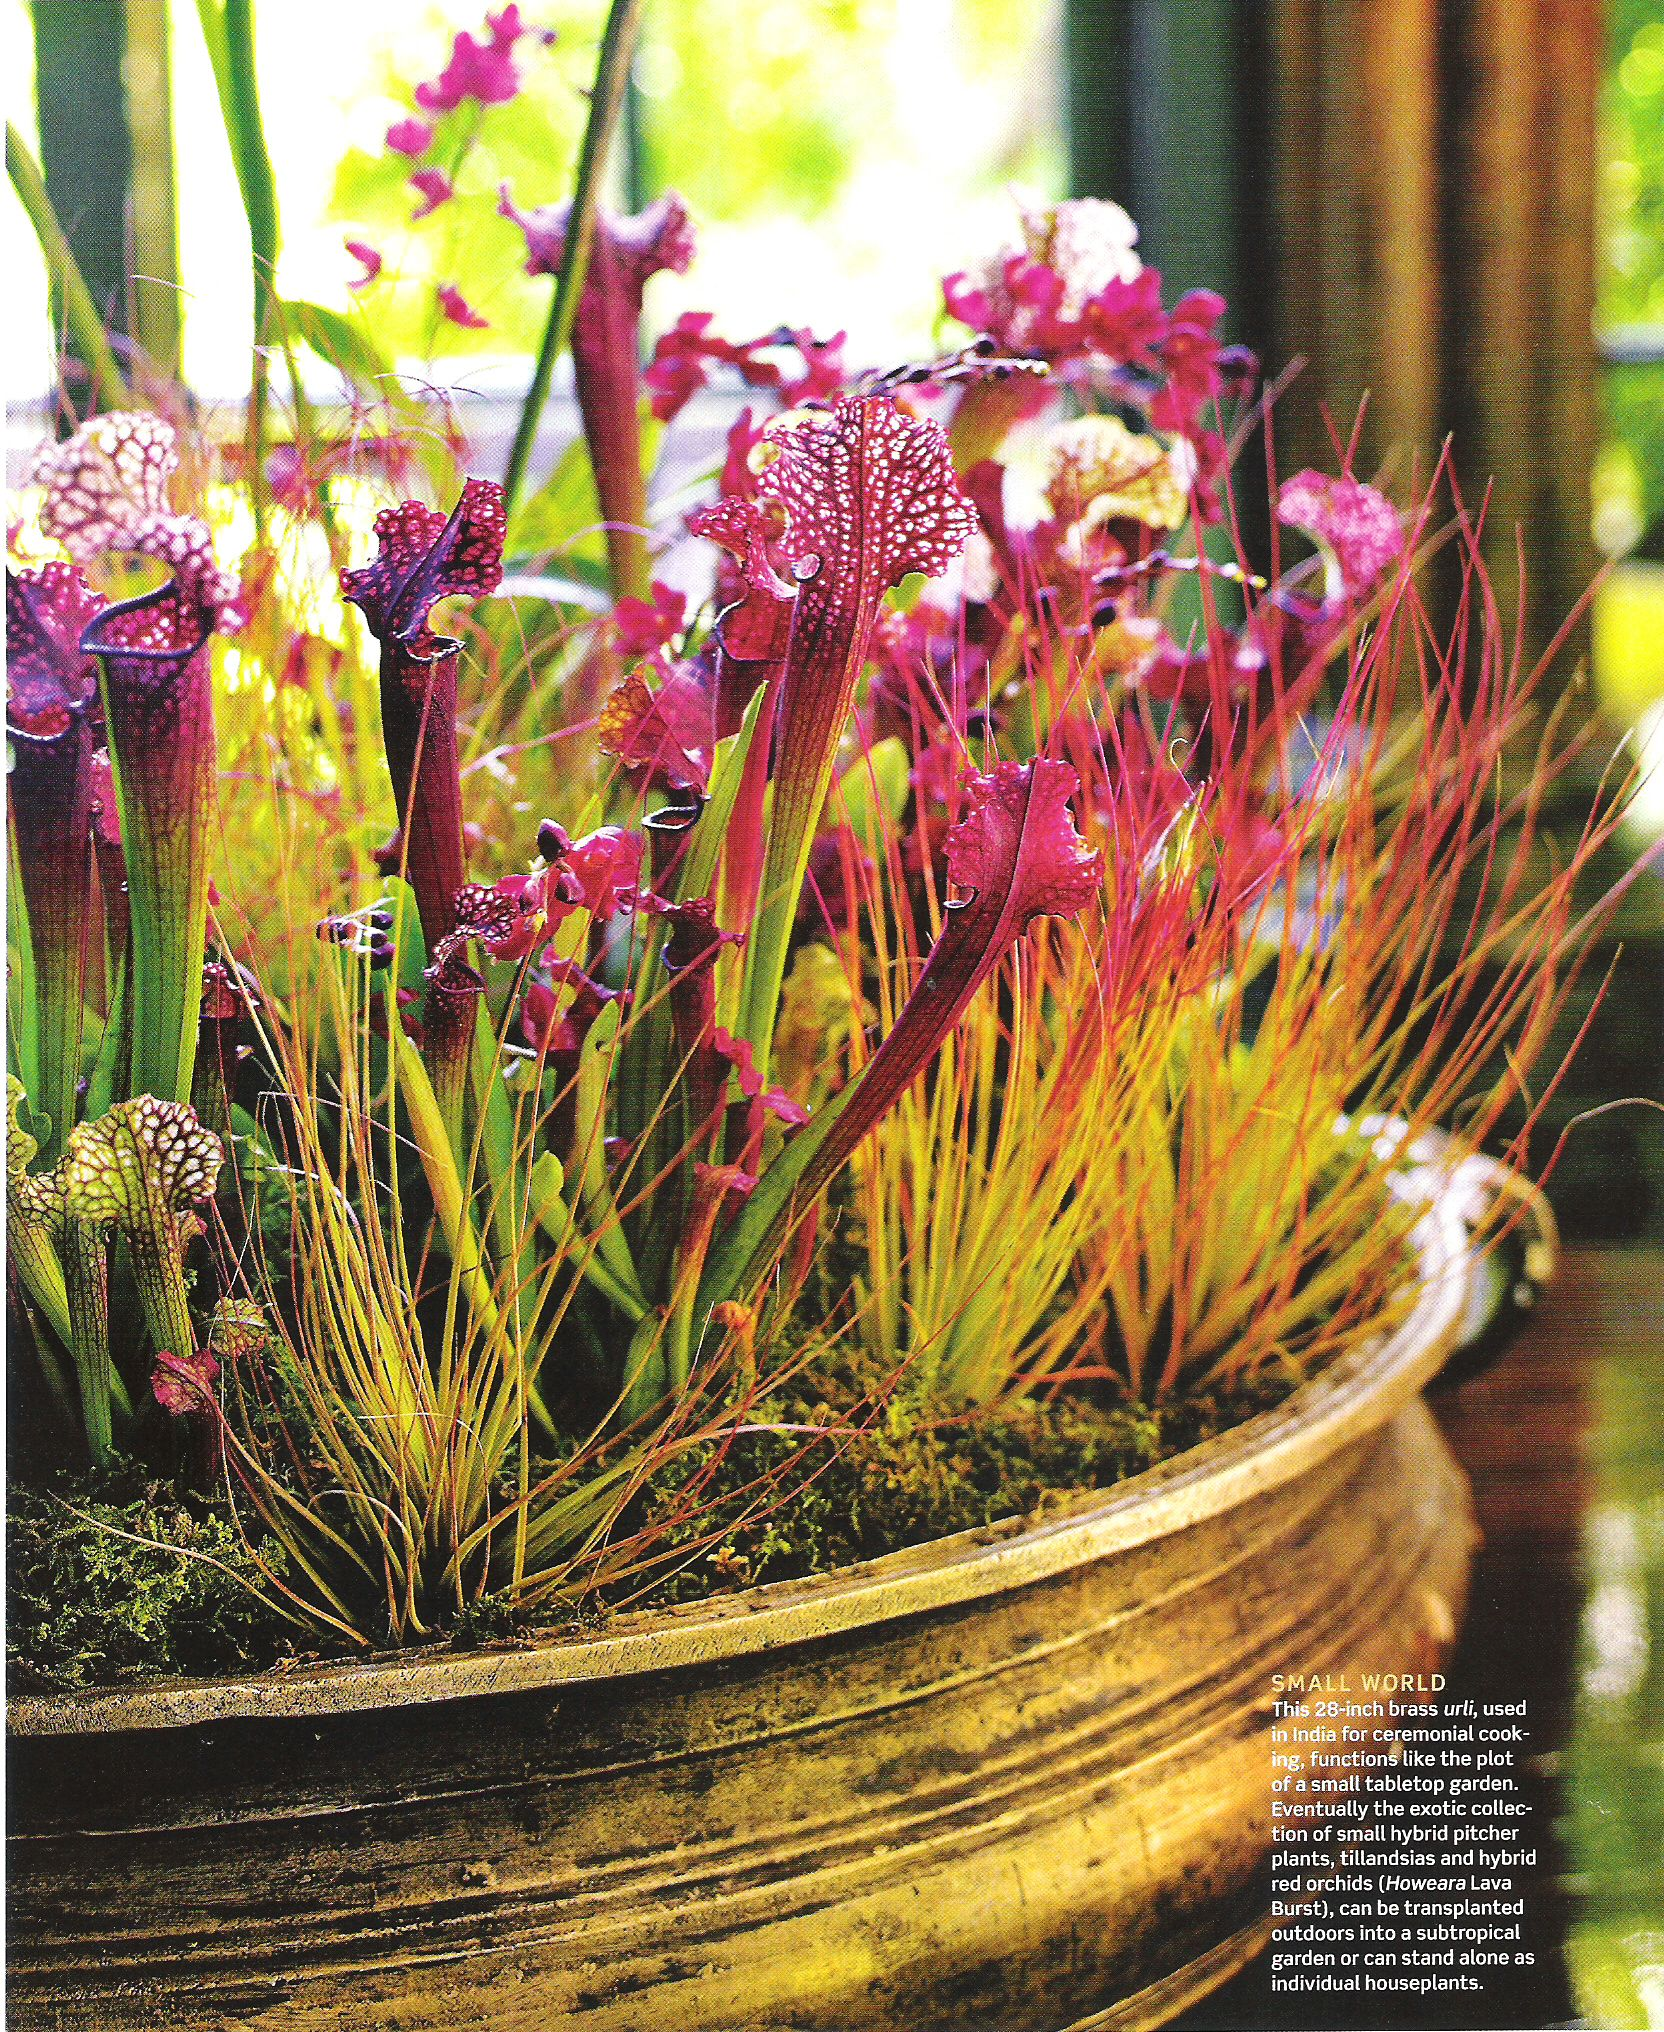 35 Advantageous Small Vegetable Garden Ideas For Your: Tabletop Garden Of Orchids, Tillandsia And Hybrid Pitcher